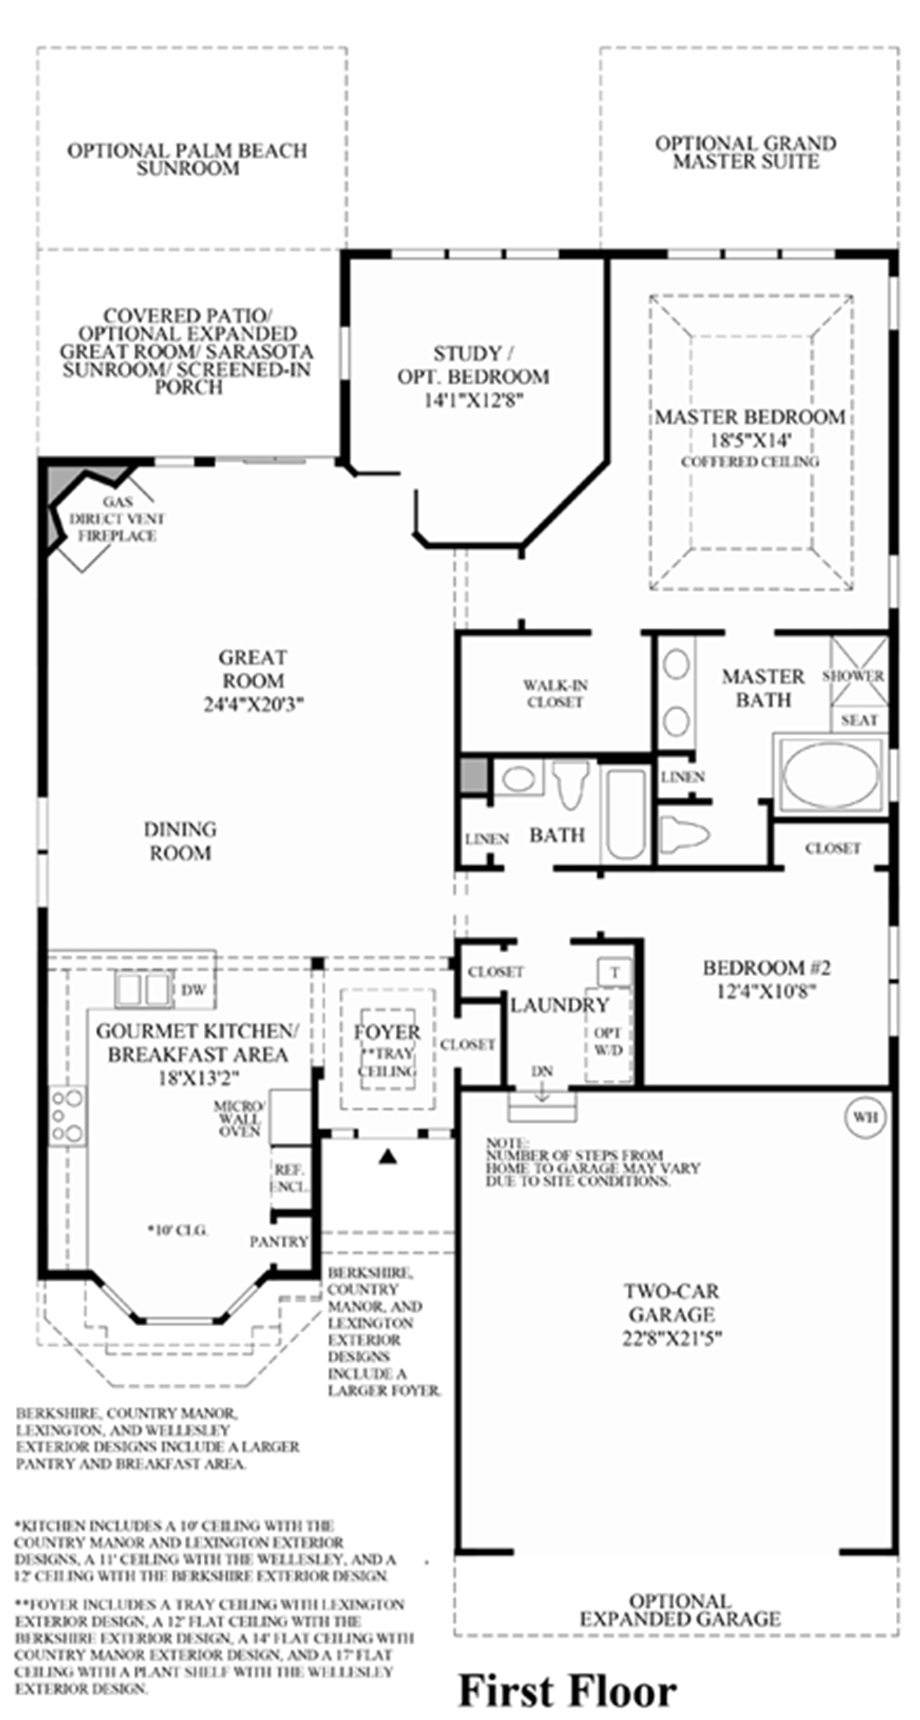 I0000s iQ4NMAZqQ likewise Residence One Modeled neighborhood together with Bowan moreover Cloudland Ga L12481 likewise Rammed Earth House Plans. on green homes north carolina